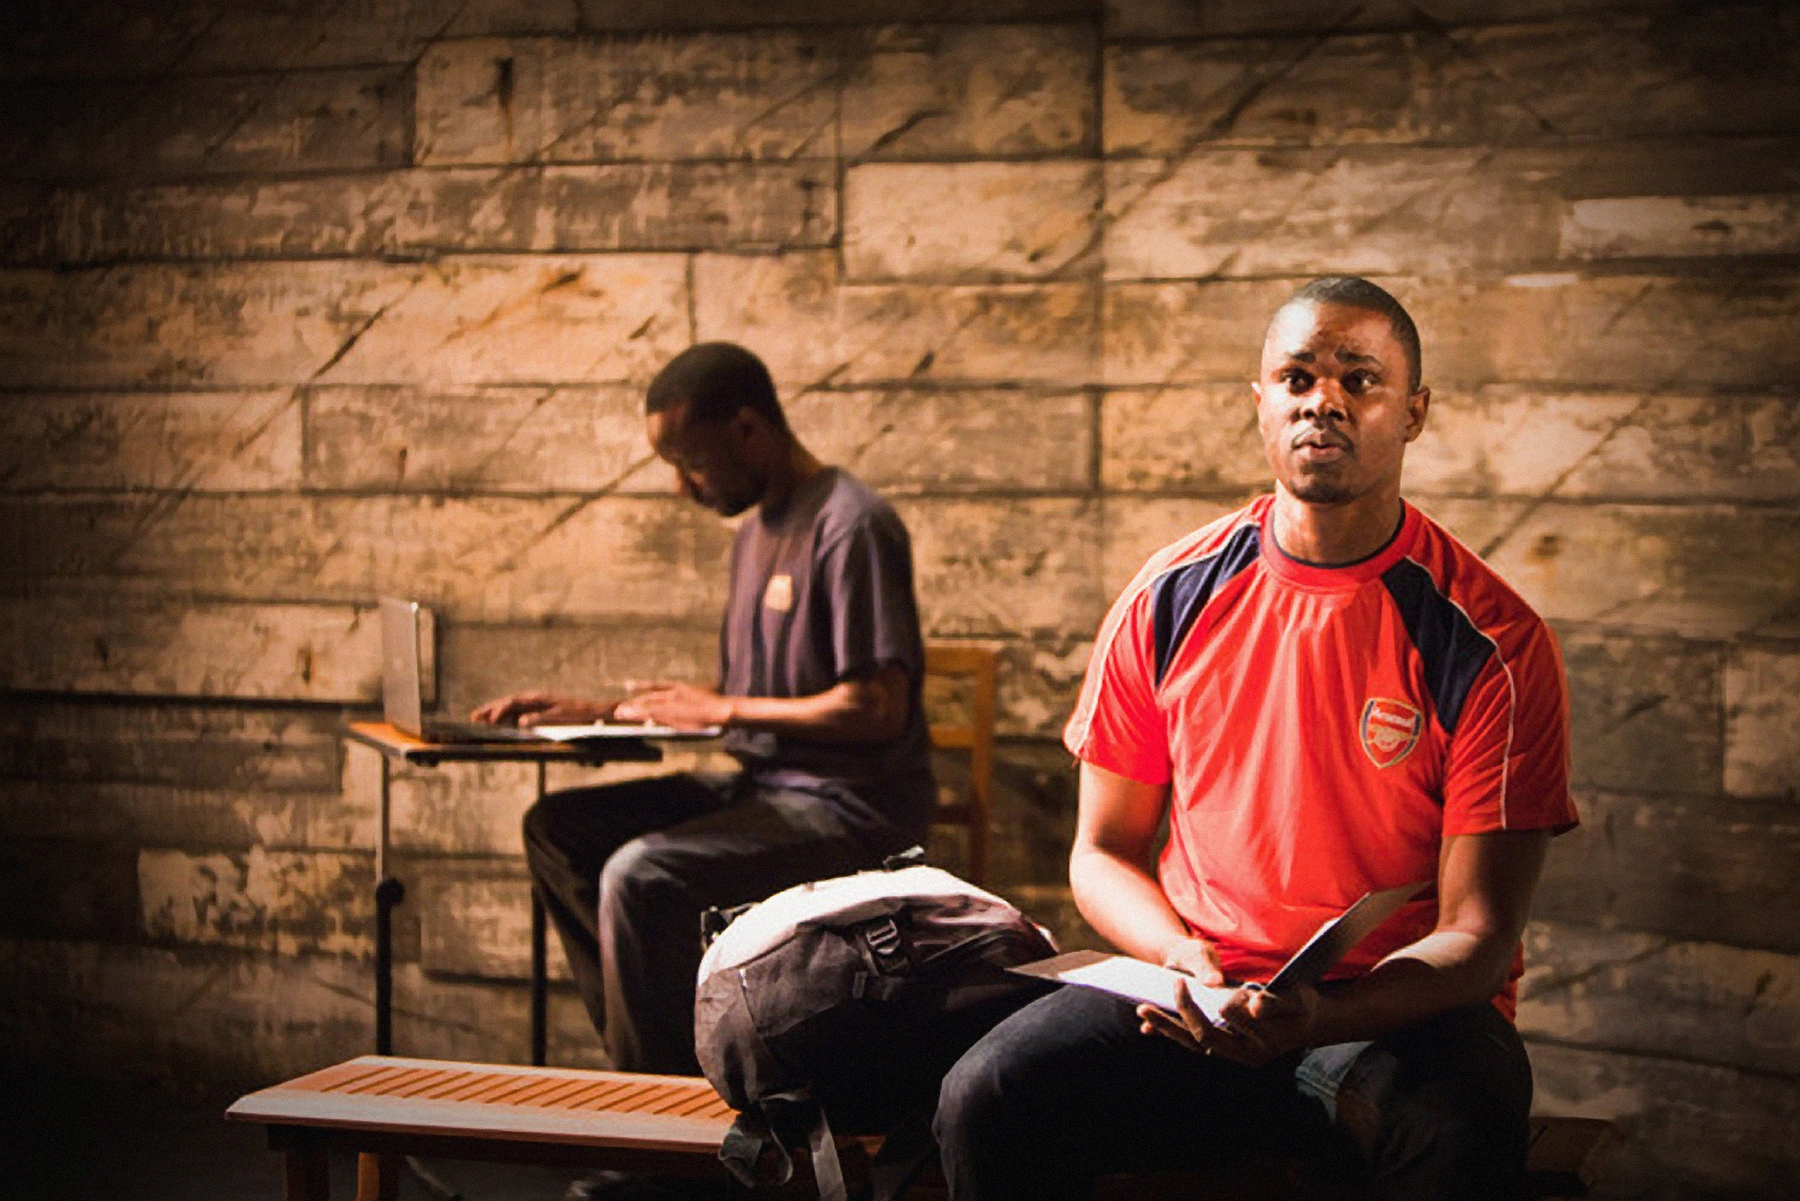 A production by ice&fire to illustrate the theatre's work during Refugee Week